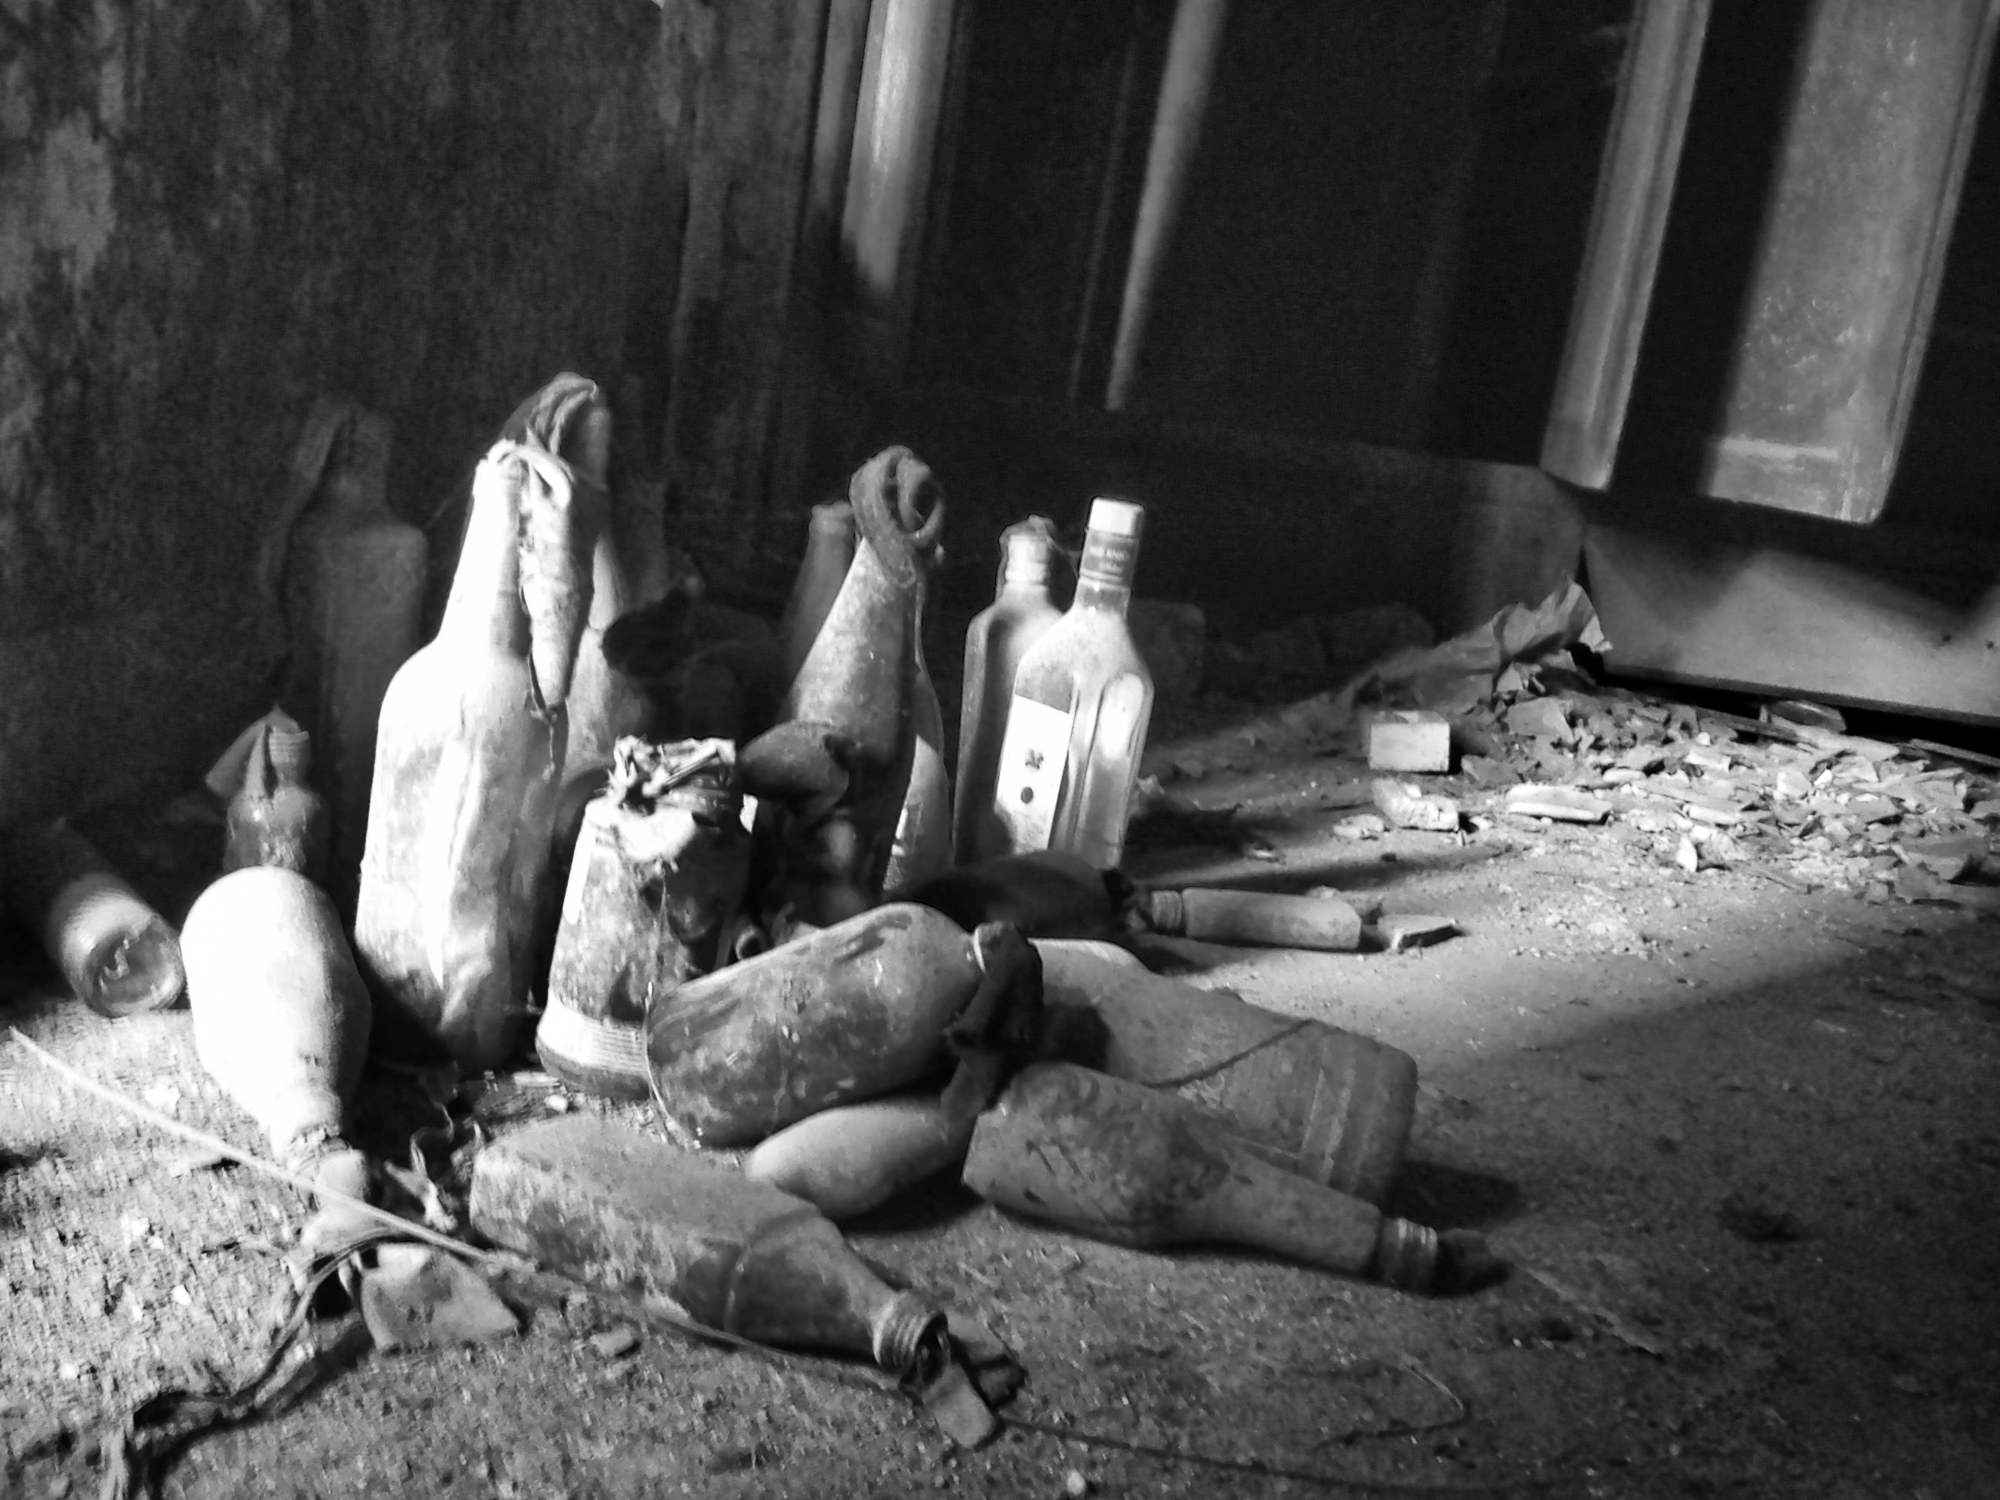 This photo is taken in first floor of a house in old Ahmedabad. This unused explosives reminds of the riots happened at that place after Godhara incident during 2002.